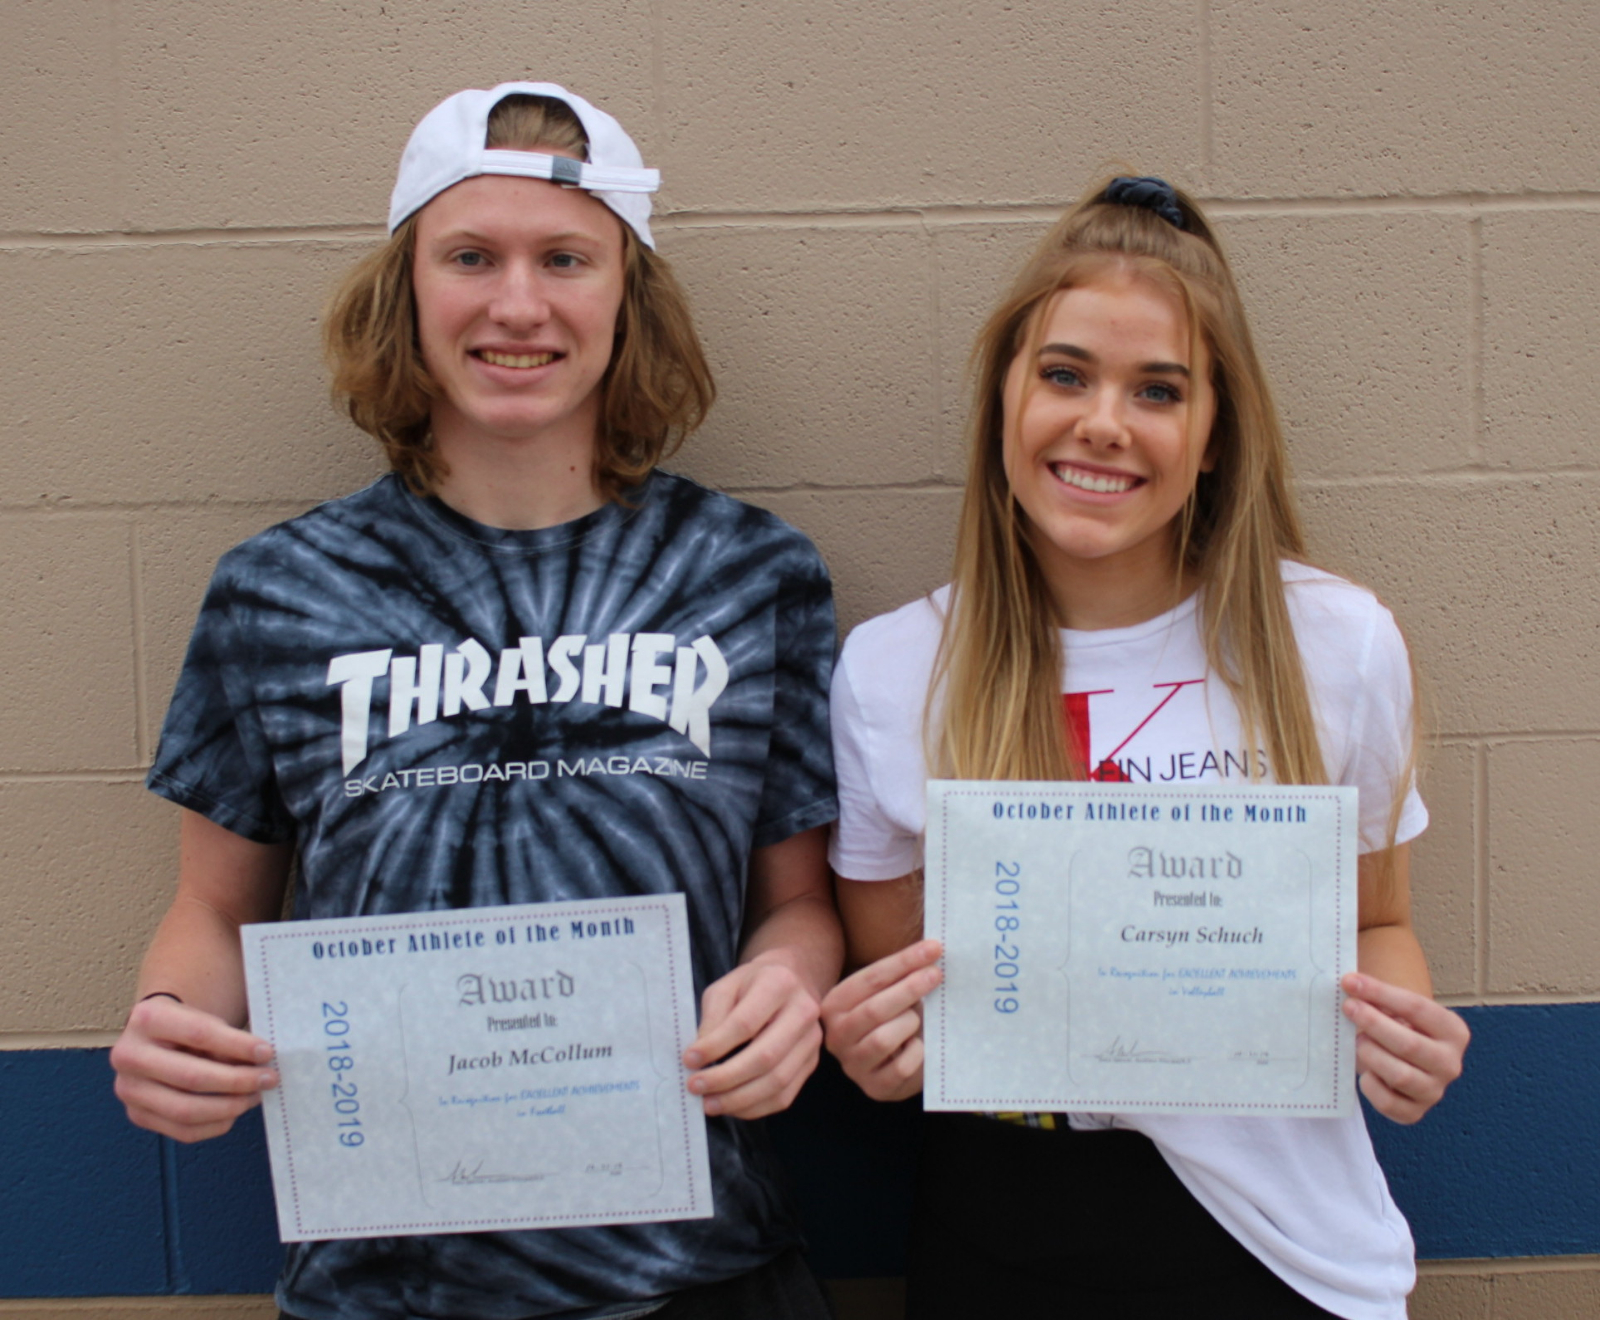 Congratulations October Athletes of the Month